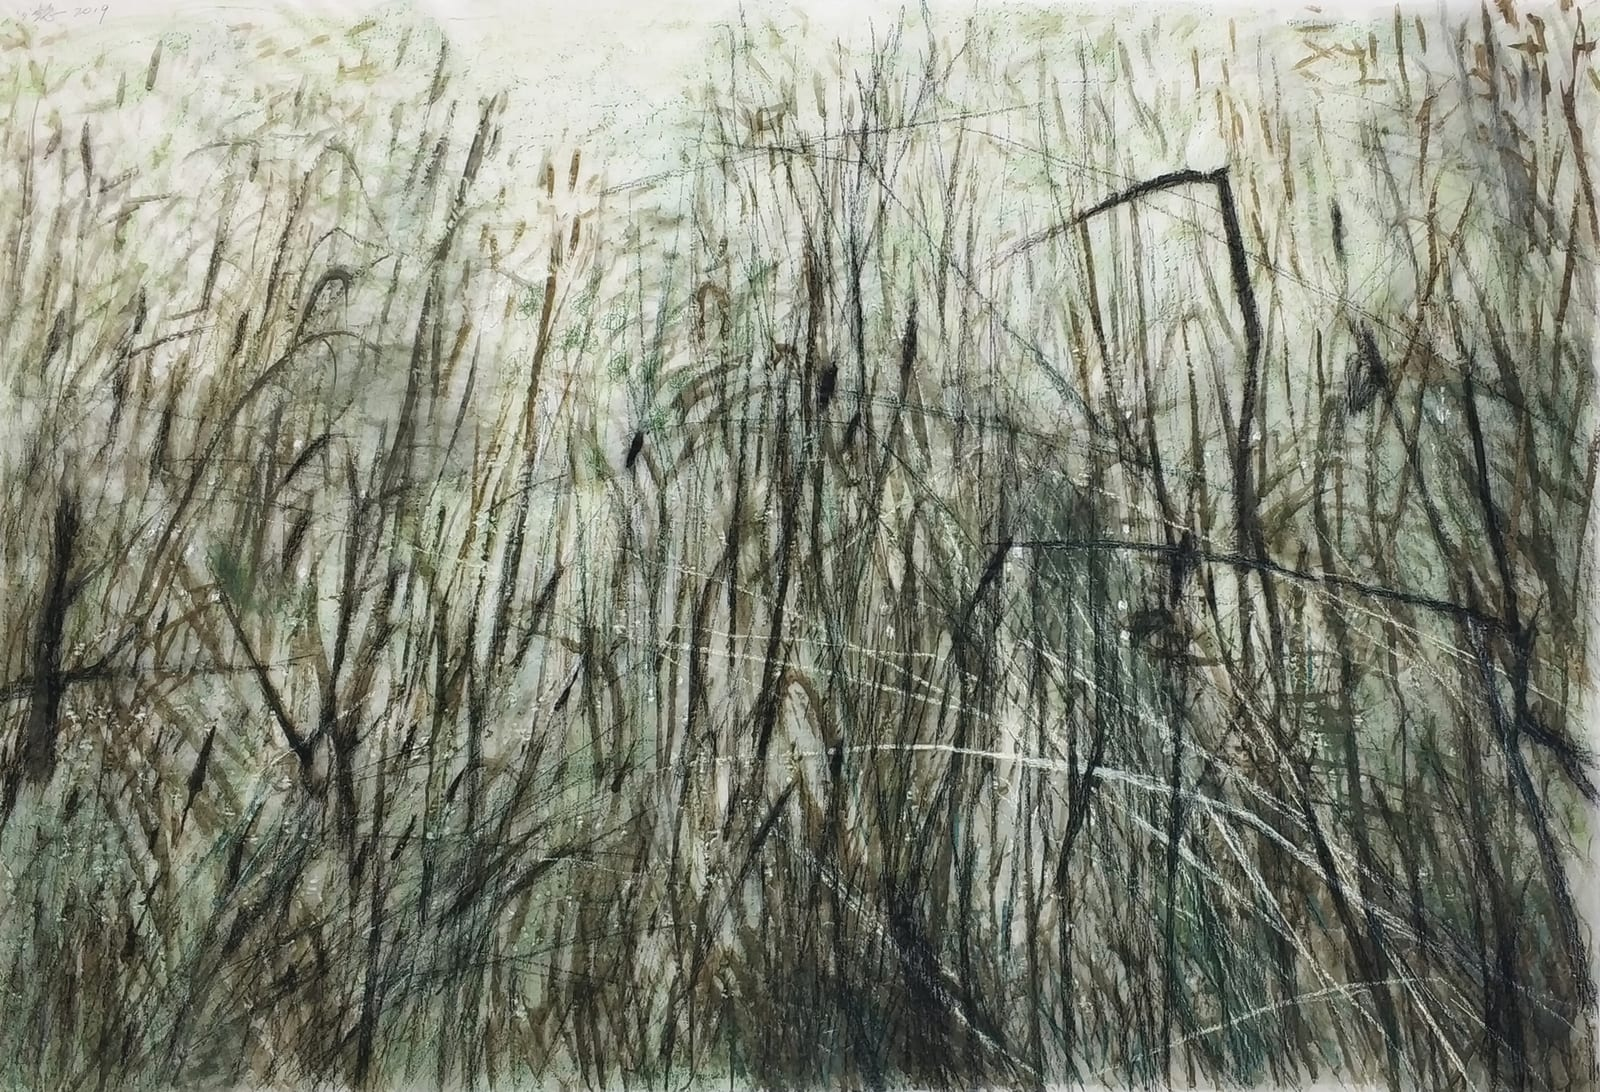 Wang Gongyi 王公懿, Leaves of Grass No.6 草葉集之六, 2019